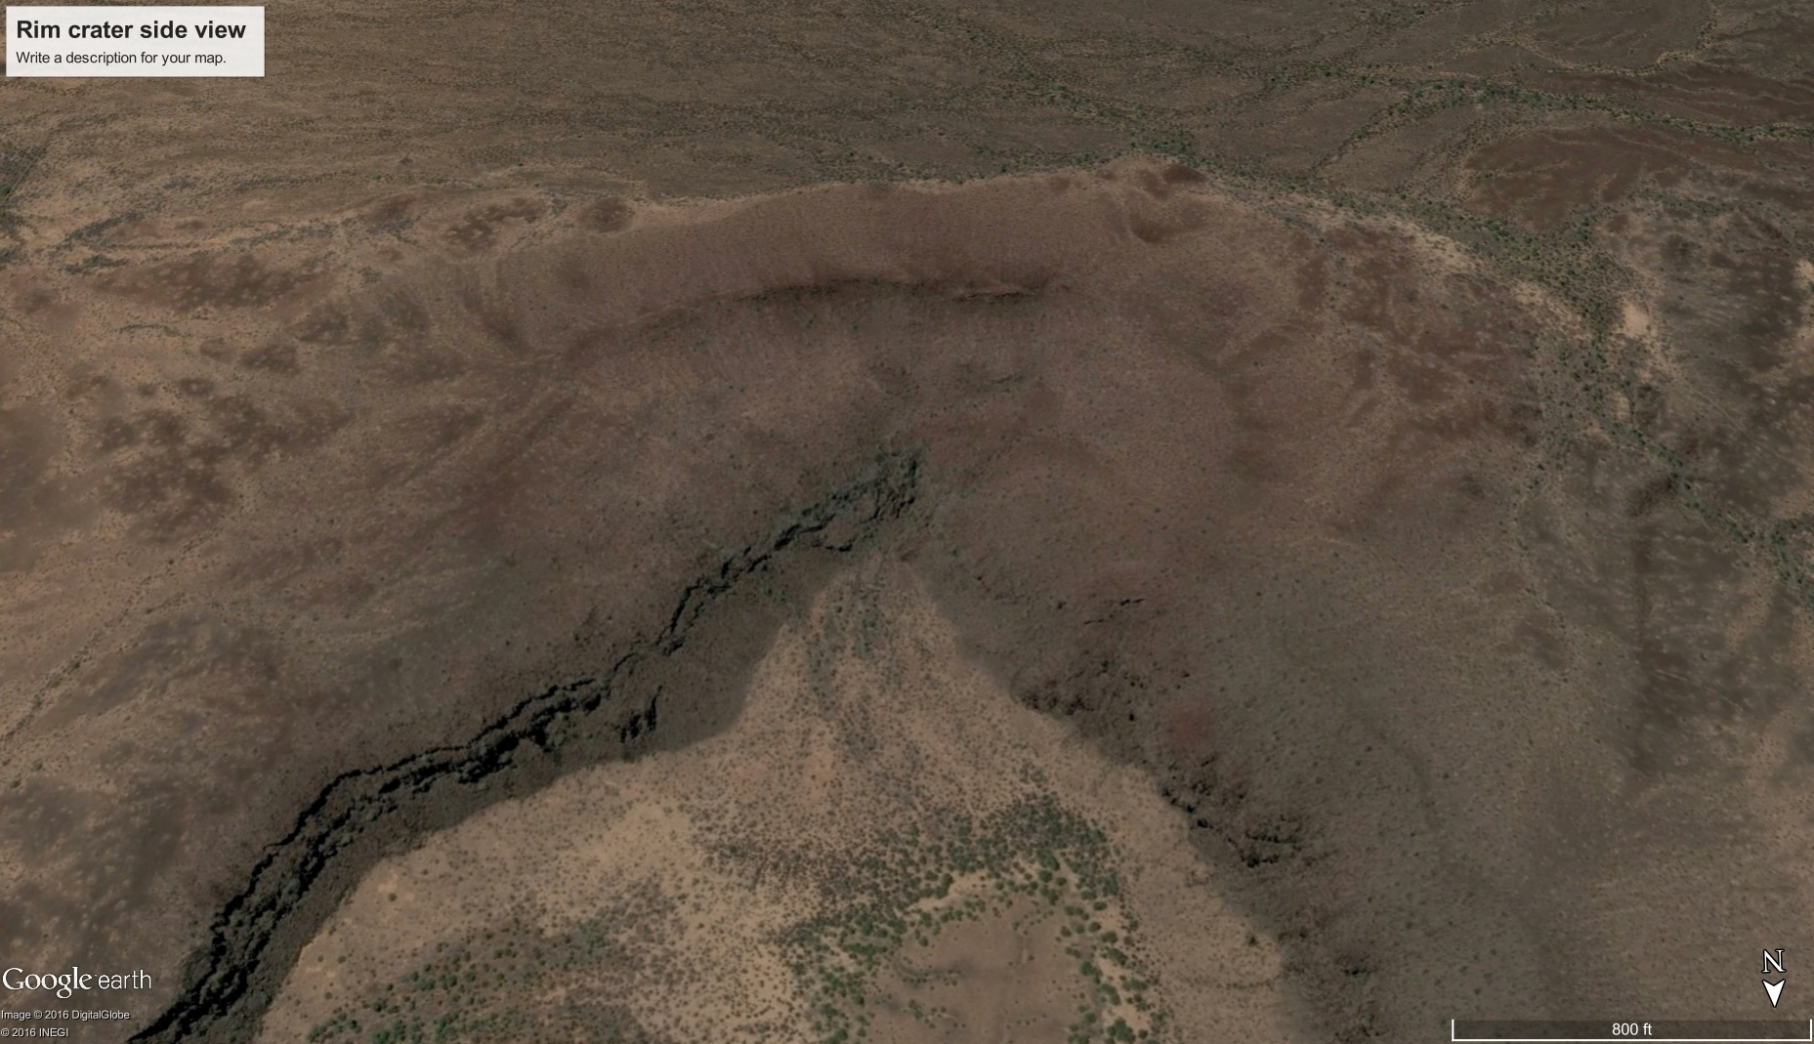 rim-crater-side-view2